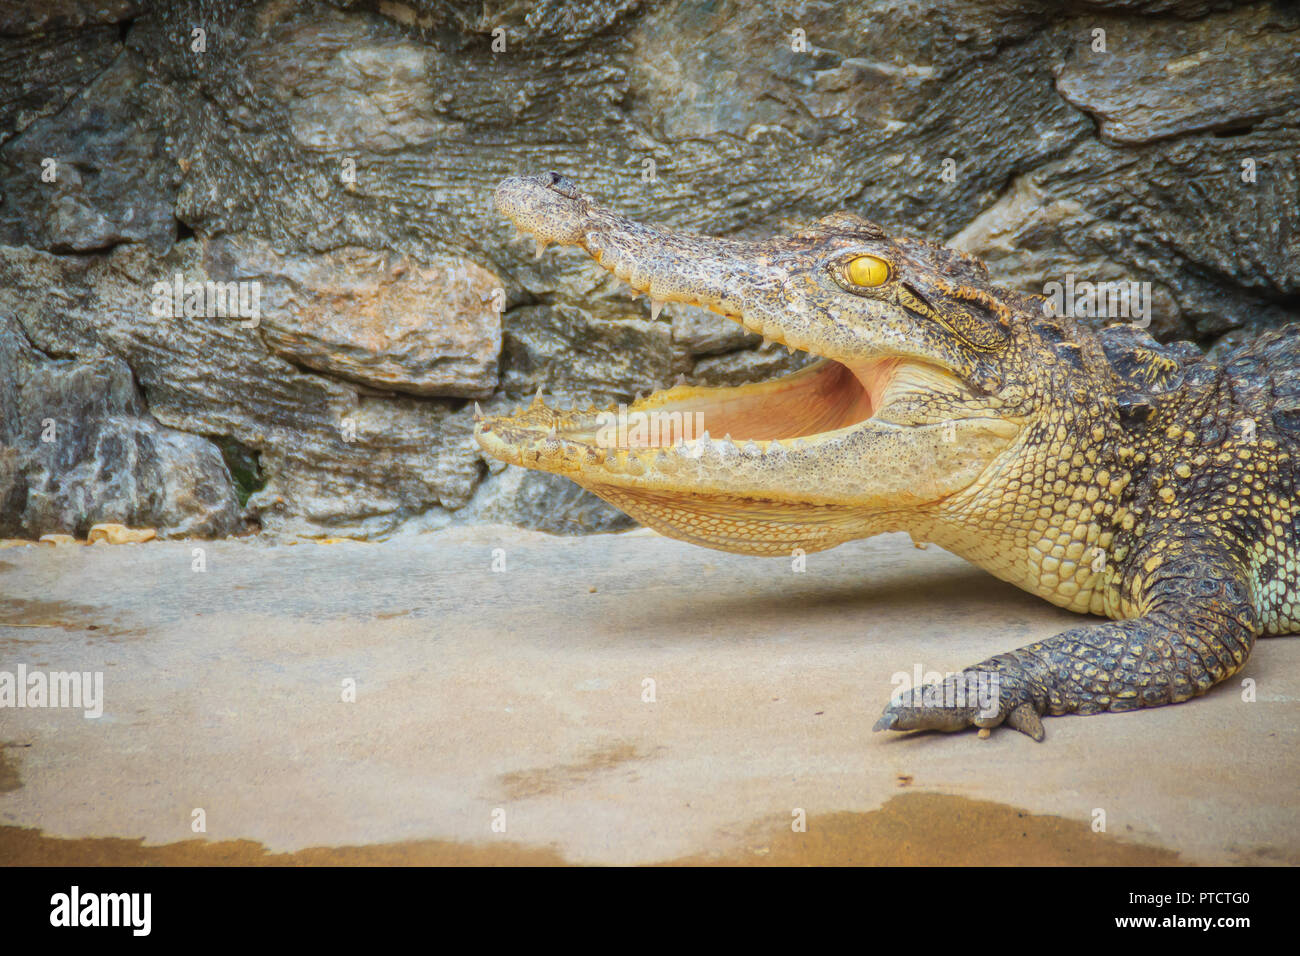 An angry crocodile is open jaws and ready to strike. A young crocodile is open mouth while resting at the farm. Commercial crocodile farming business  Stock Photo